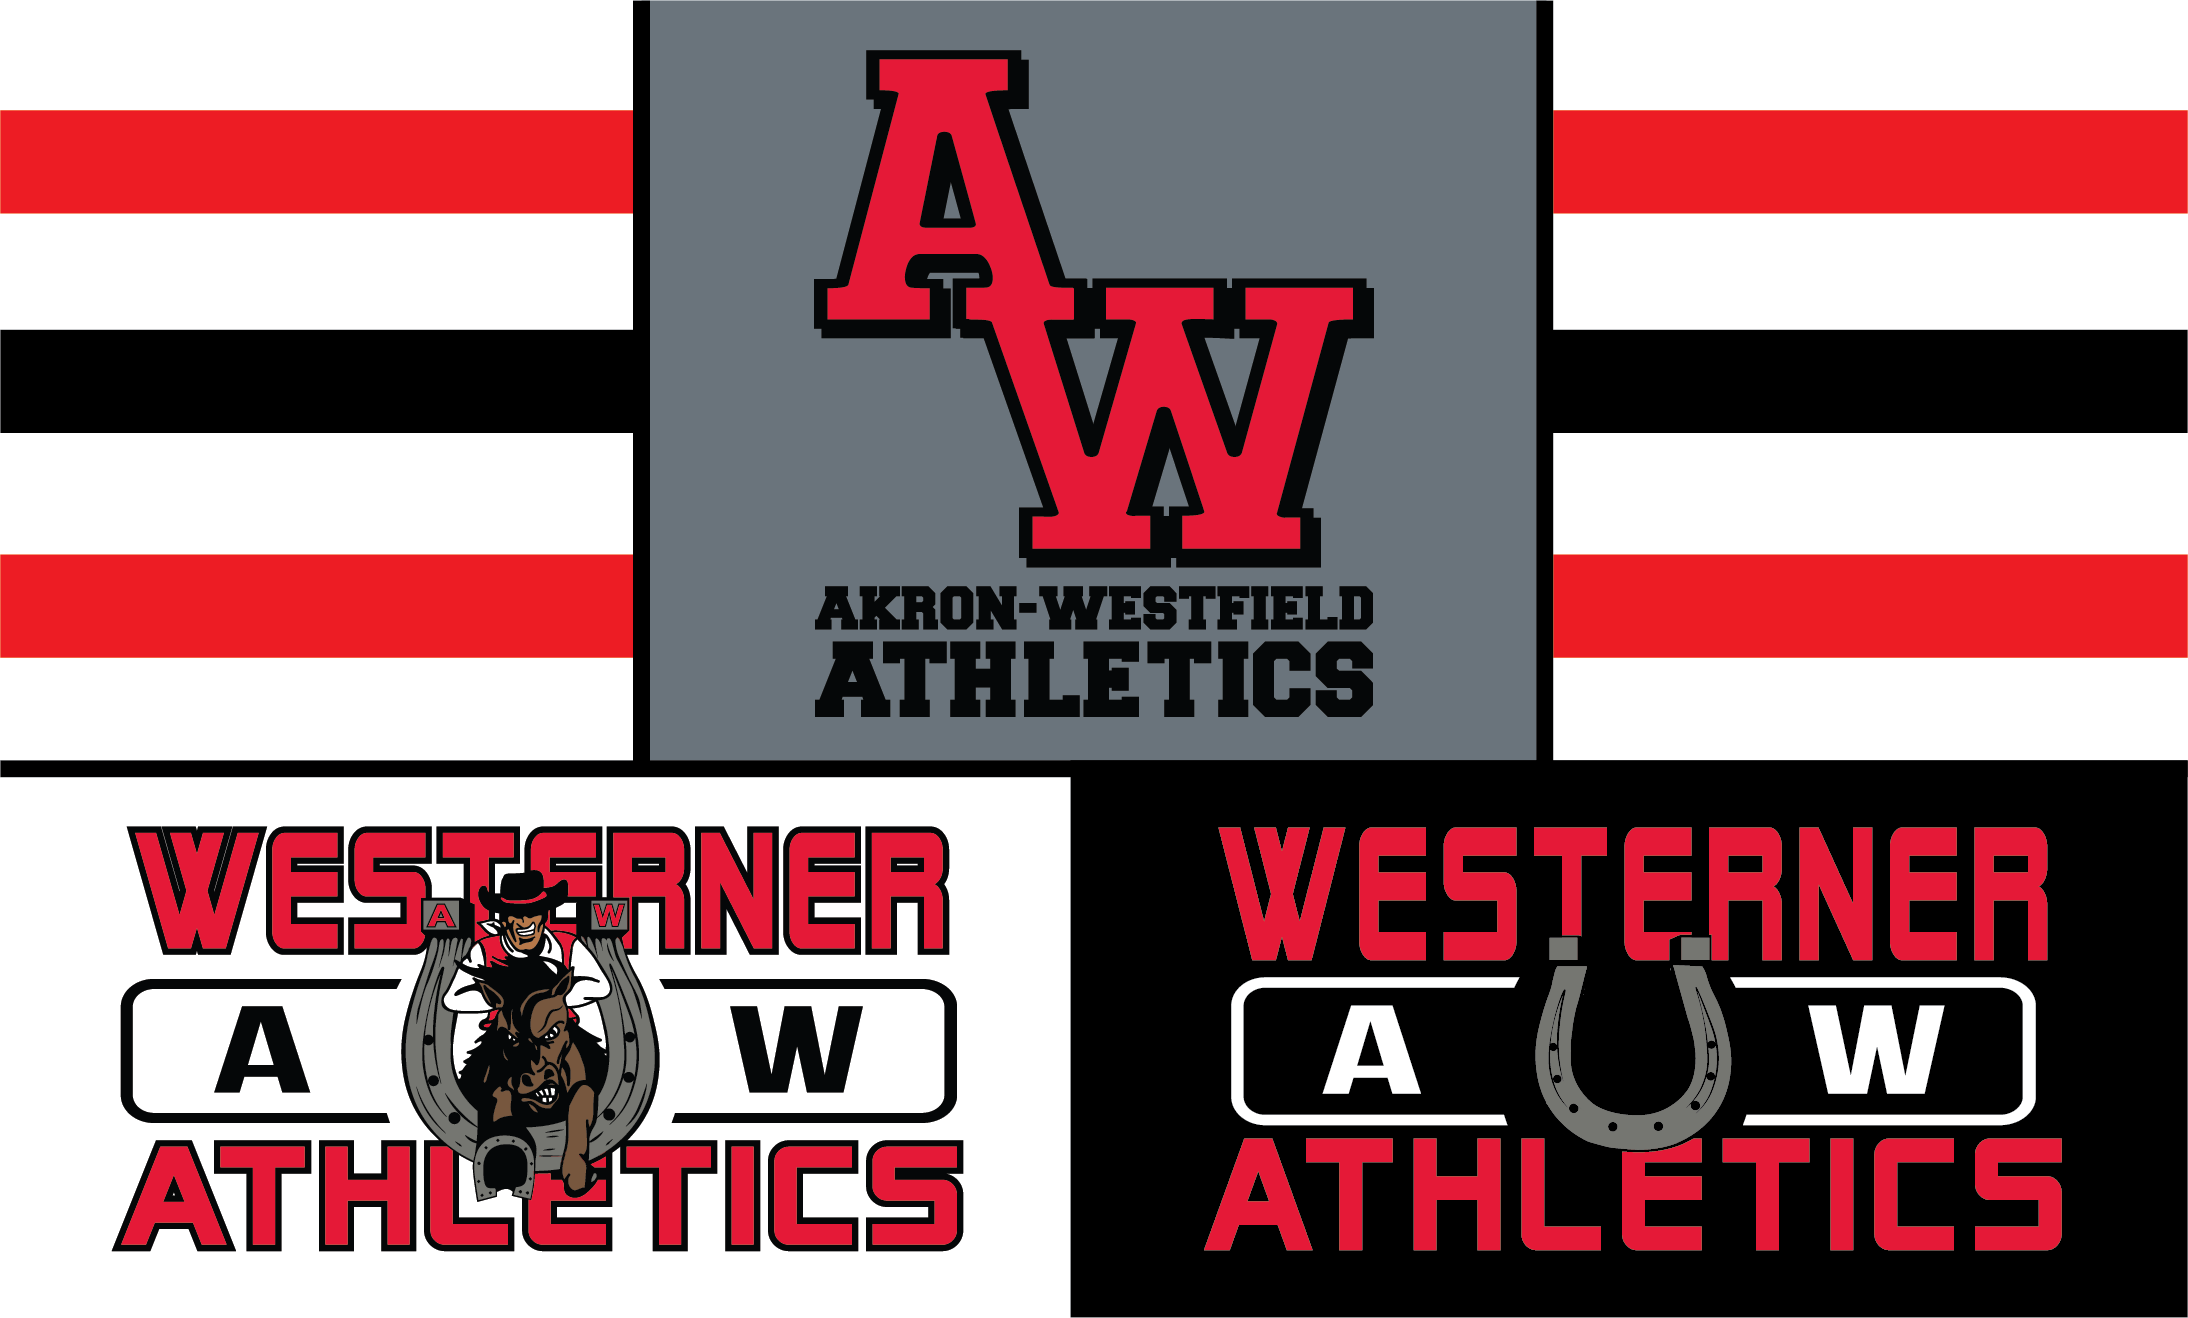 Akron Westfield Athletic Booster Club